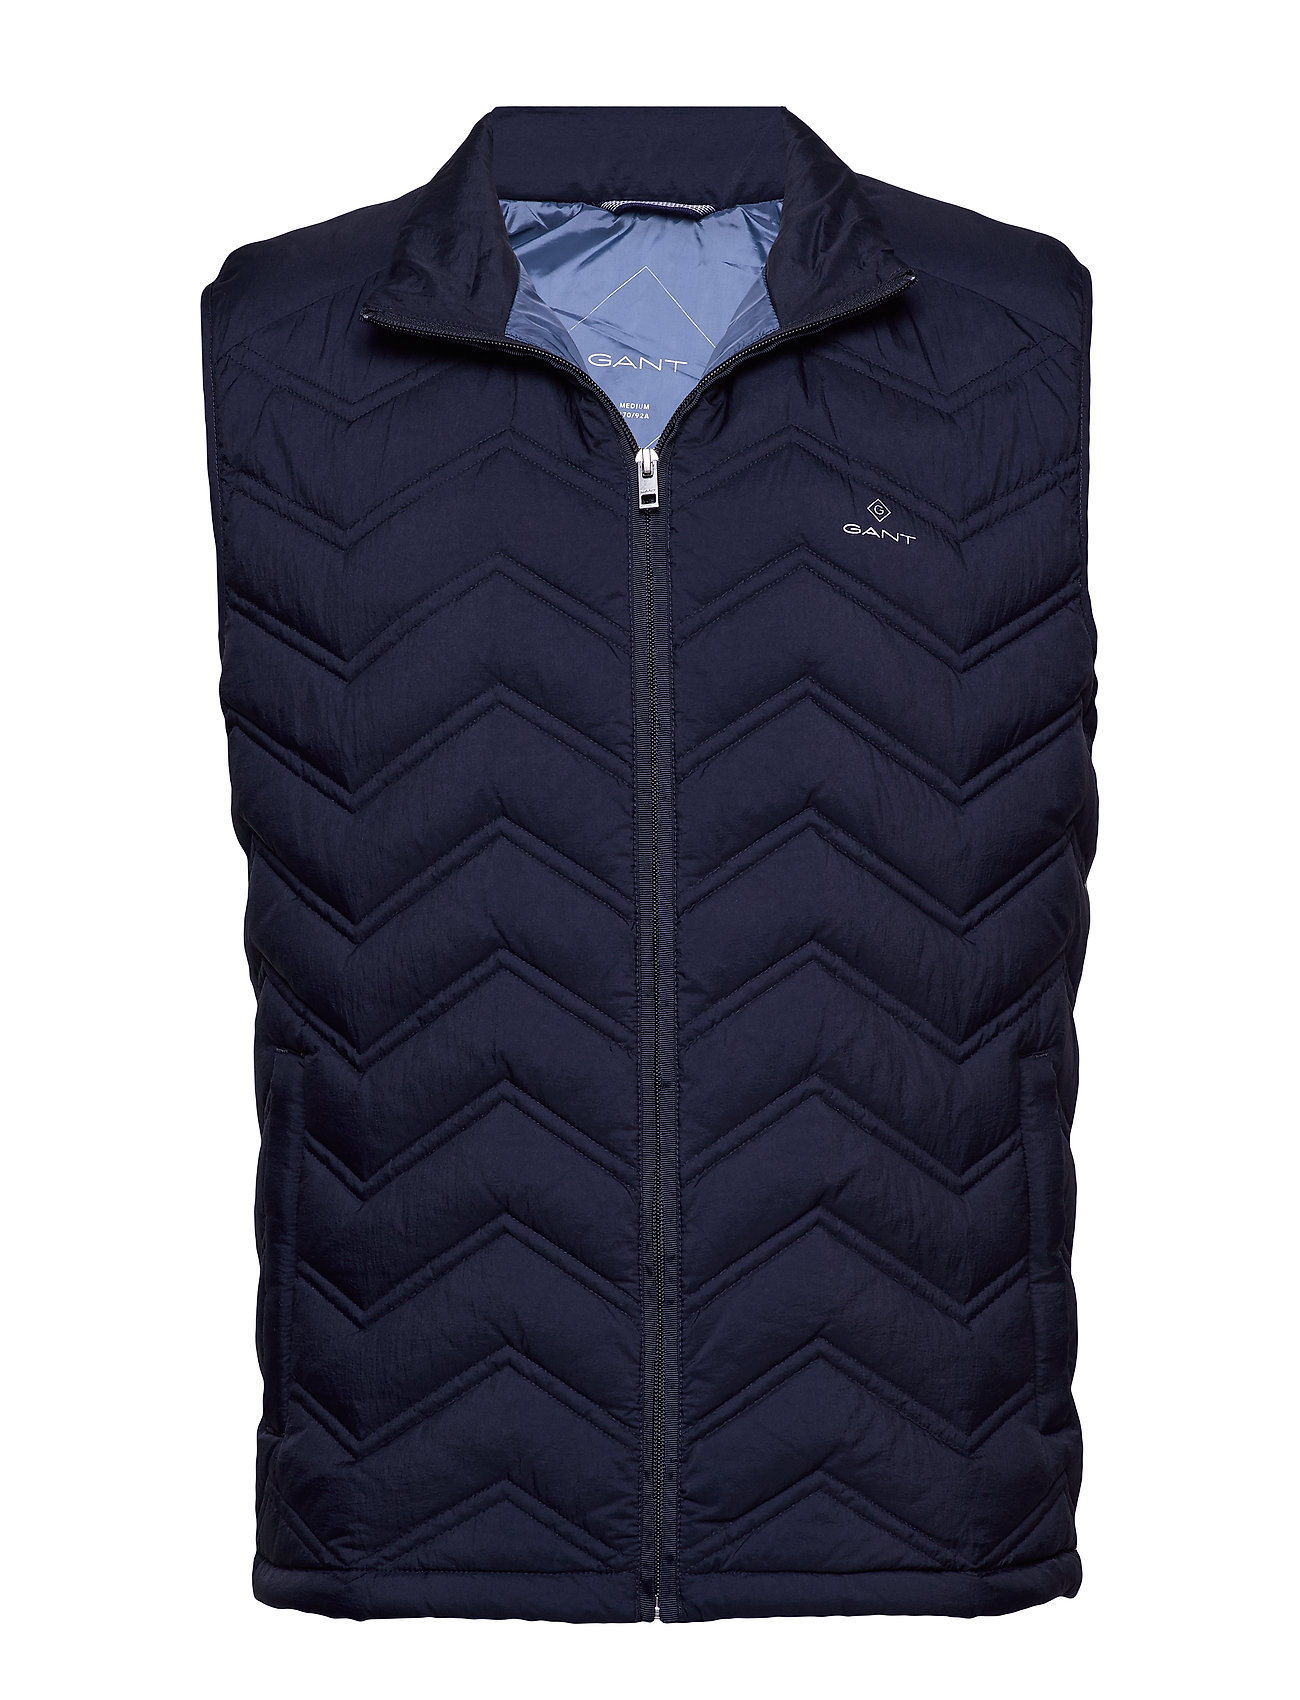 Gant D1. THE LIGHT DOWN GILET - MARINE